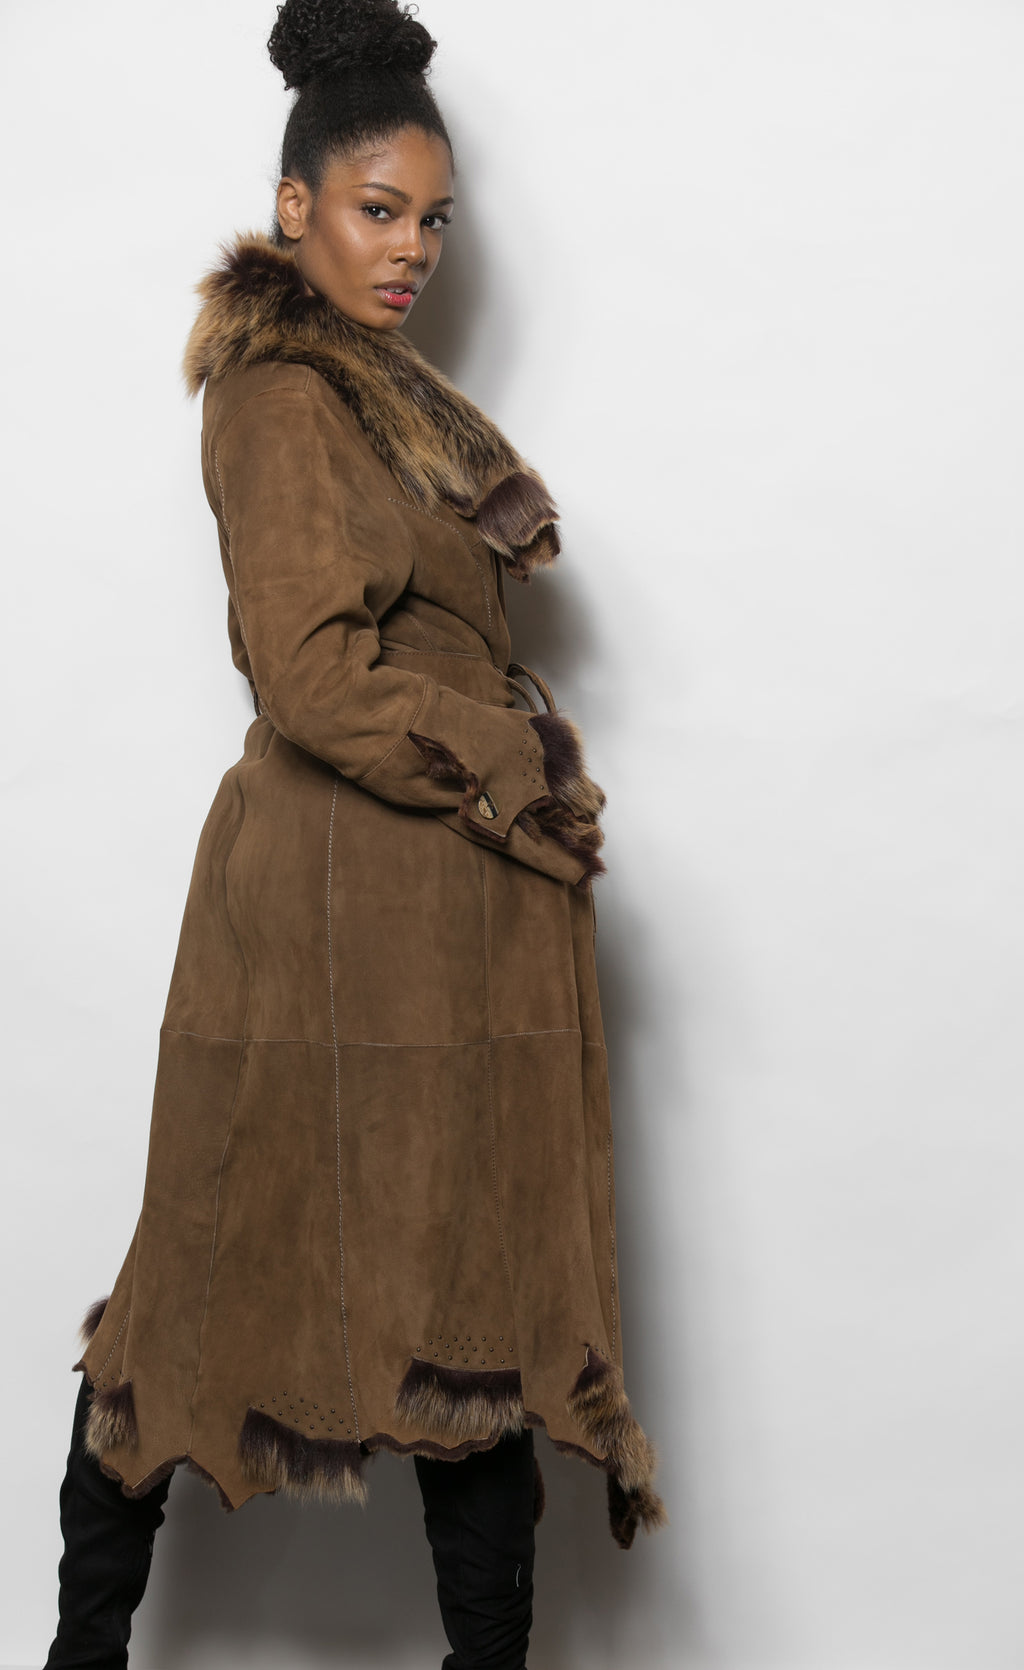 FUR Shearling Coat Brown Assym Hem backview 2295 M